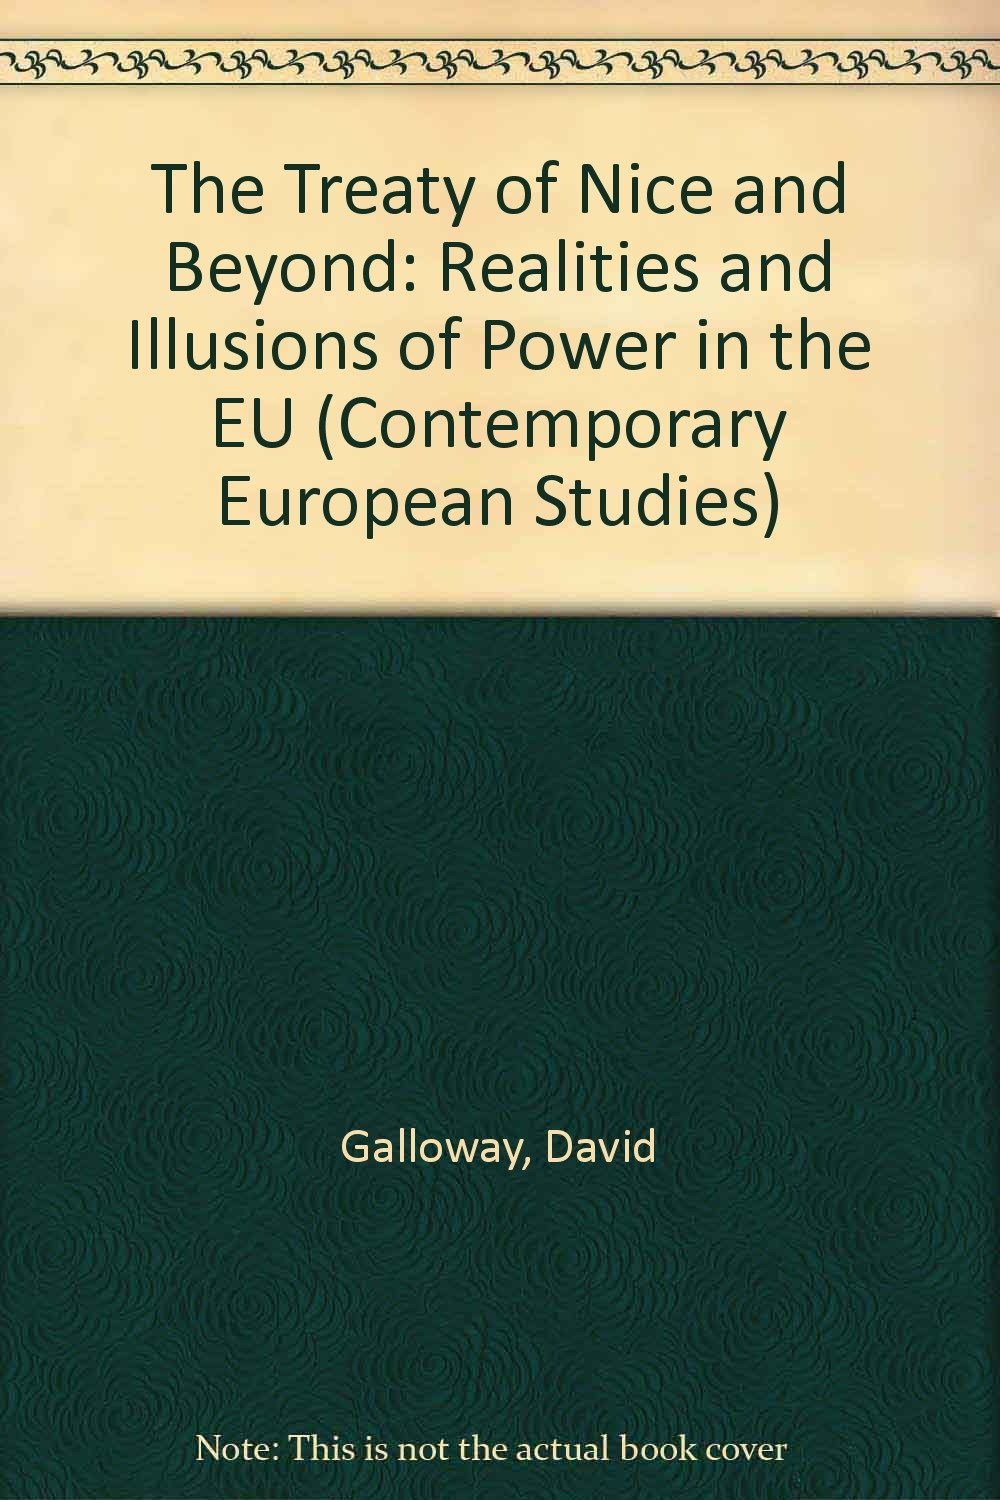 The Treaty of Nice and Beyond: Realities and Illusions of Power in the Eu (Contemporary European Studies, 10) pdf epub